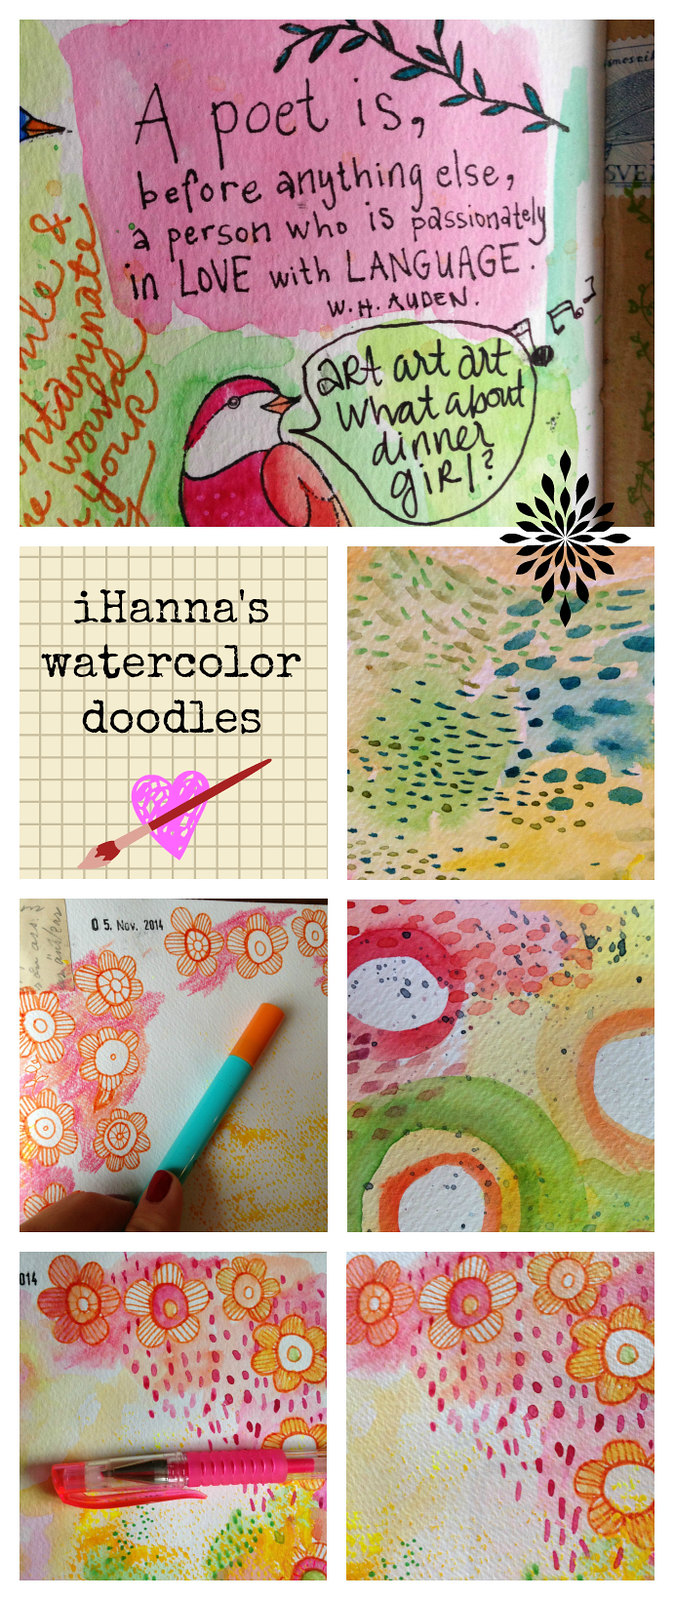 iHanna's Watercolor doodles